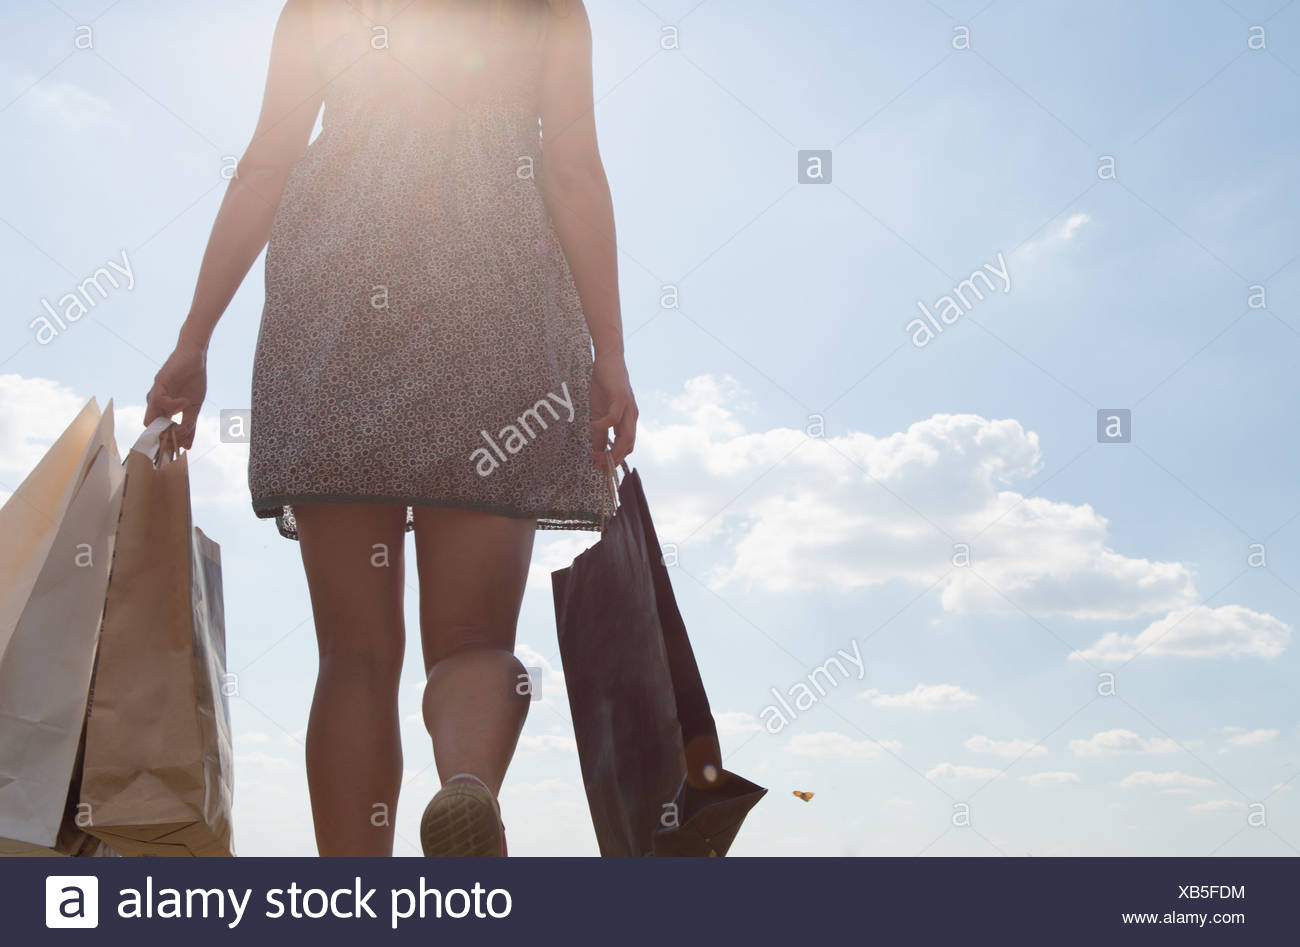 Mid section of woman carrying shopping bags Photo Stock